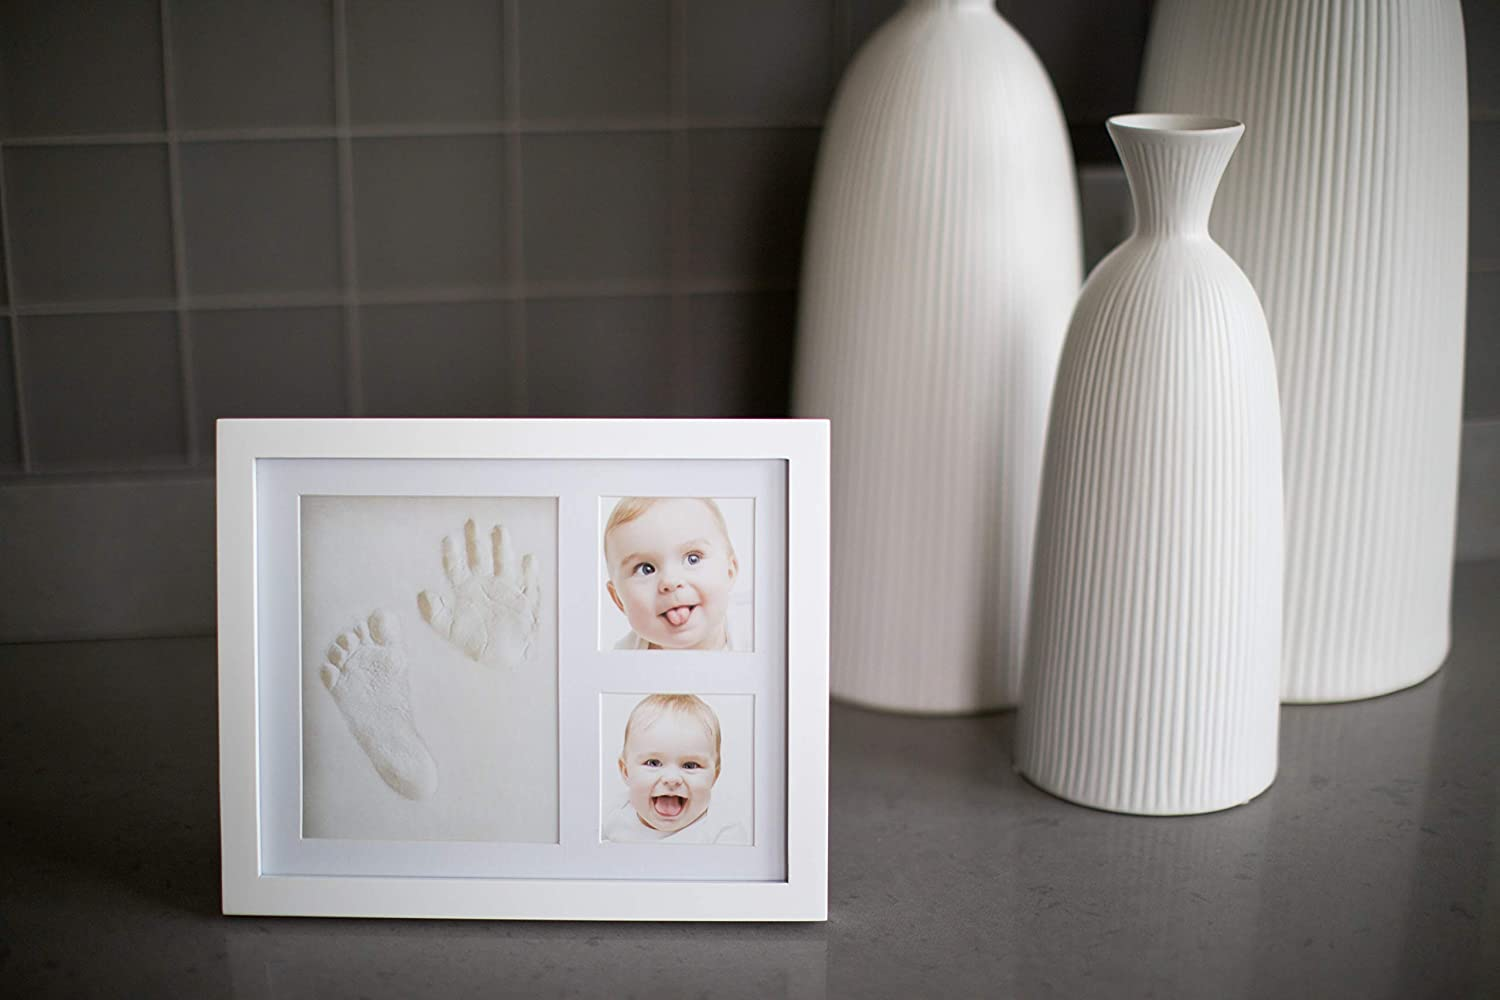 Very Pepper Clay Keepsake Handprint/&Footprint Photo Frame Kit-Unique Unisex Newborn Baby Shower Gift Ideas for New Parents Mom/'s Memory Sets for Infant Boys/&Girls Decoration for Child Nursery Room